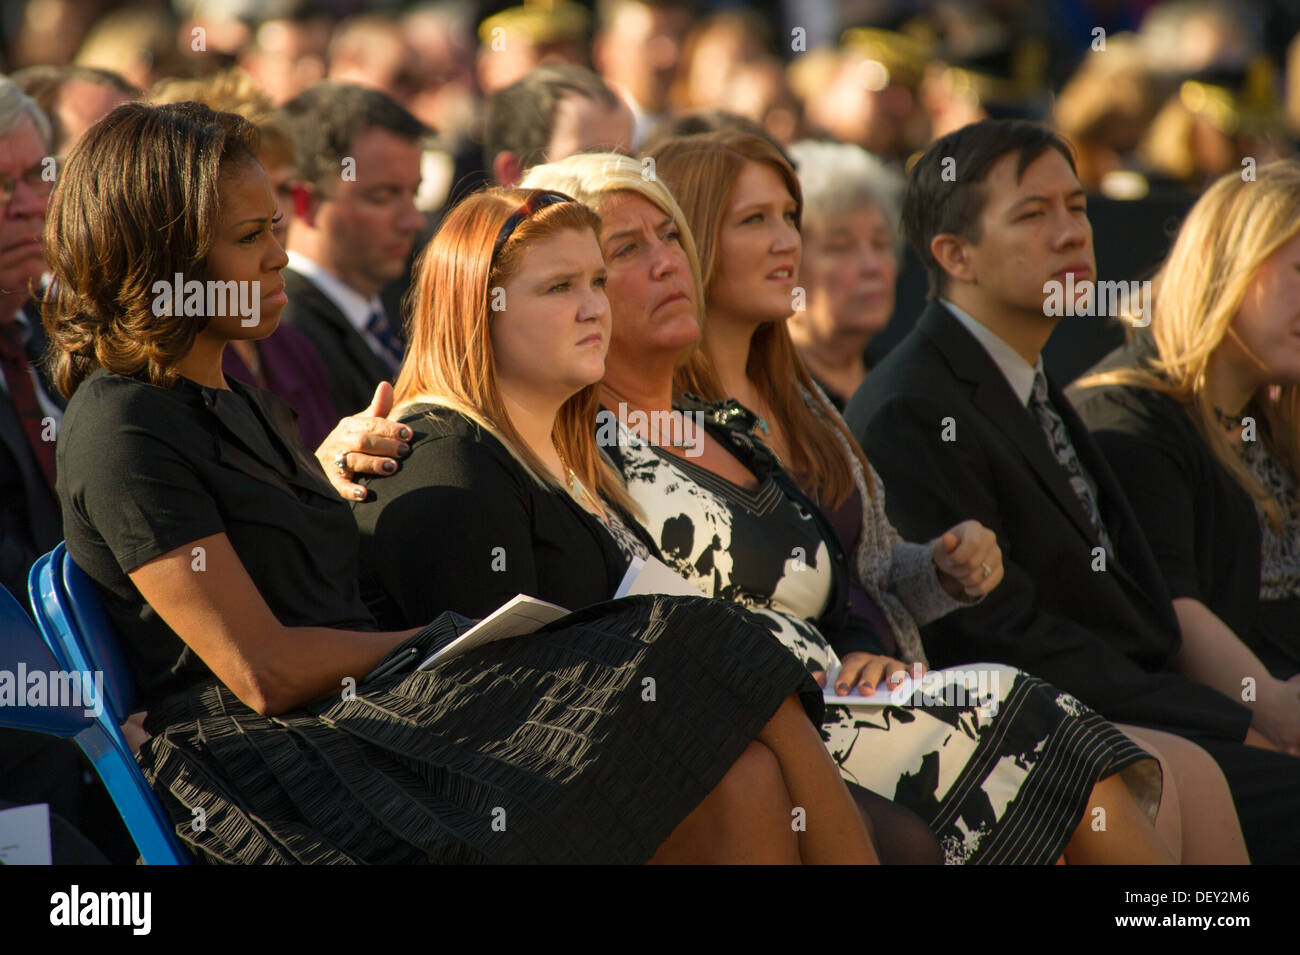 Friends and family of those killed at a Navy Yard shooting look on during a memorial for those killed during a shooting Stock Photo